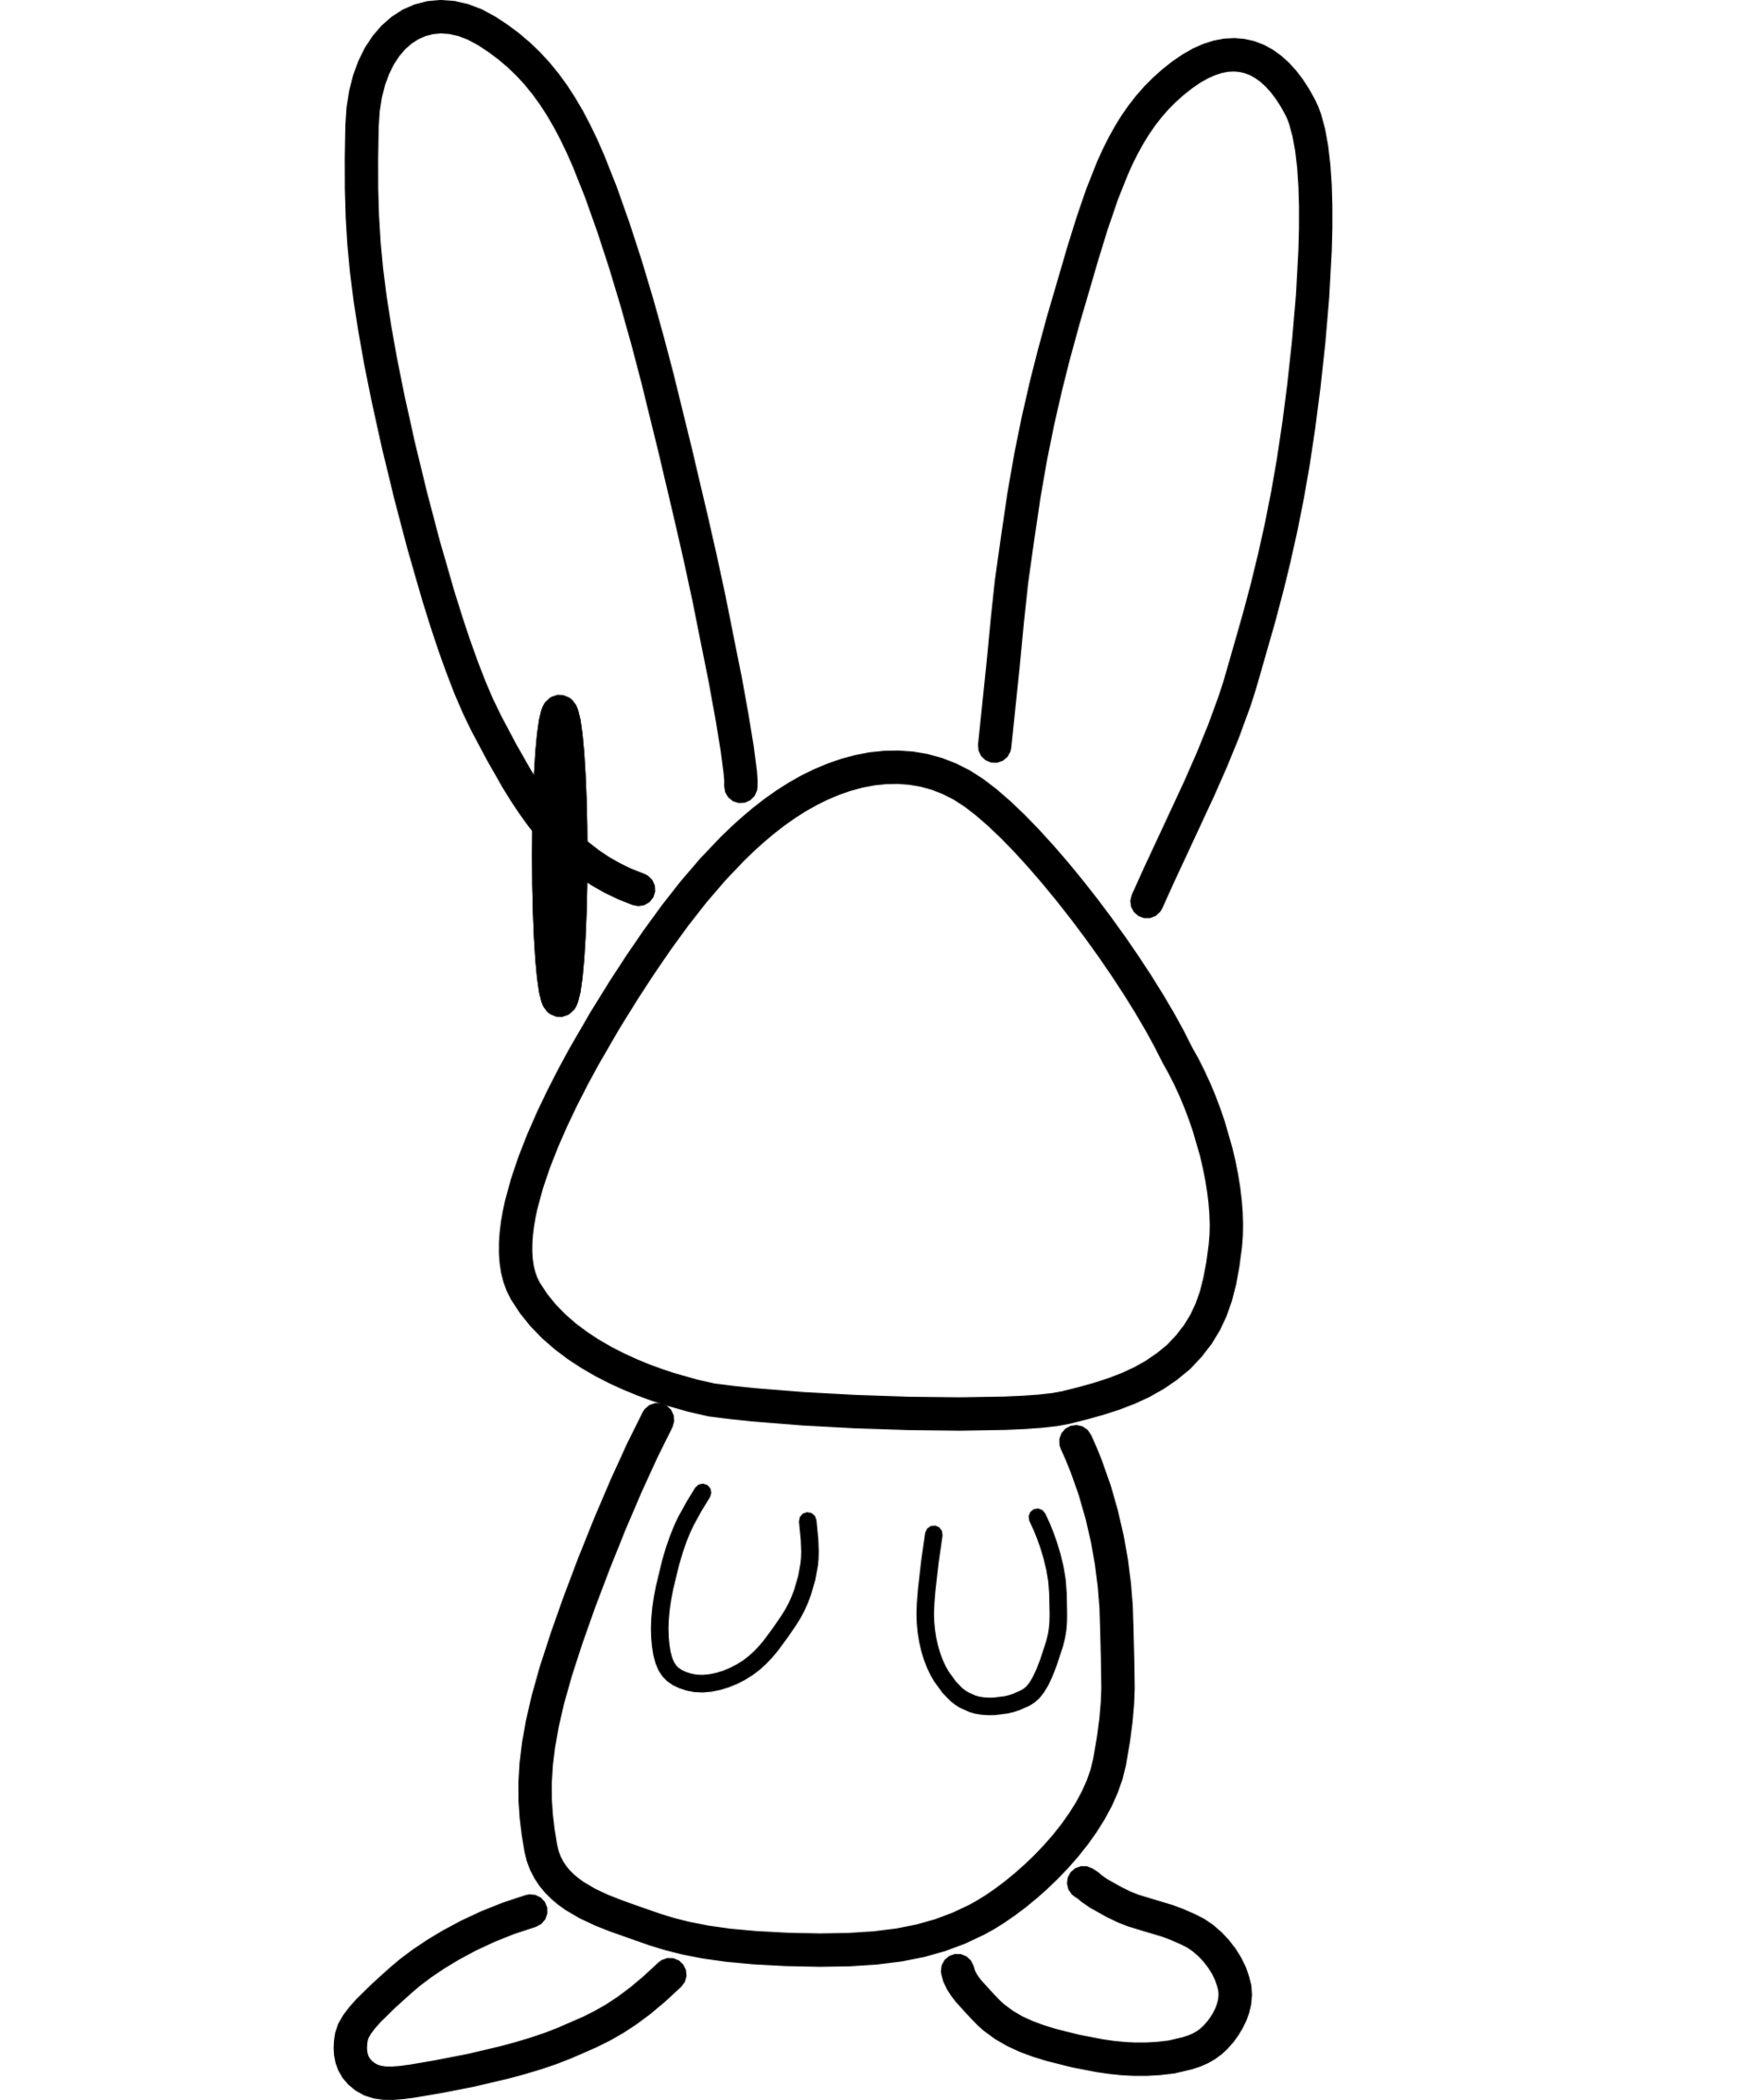 Line Drawing Bunny : Rabbit line drawing clipart best